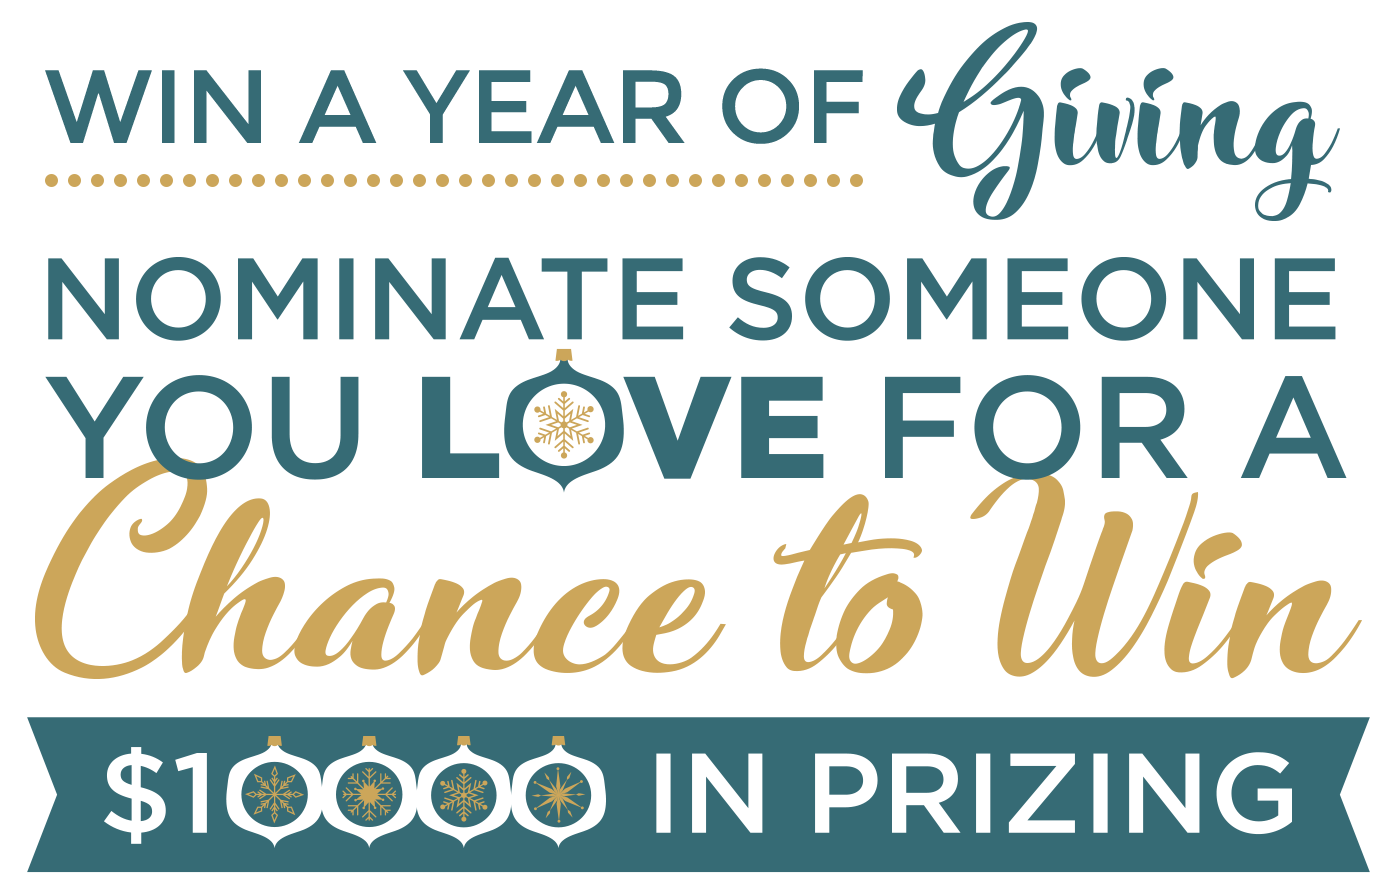 Nominate someone you love for a change to win